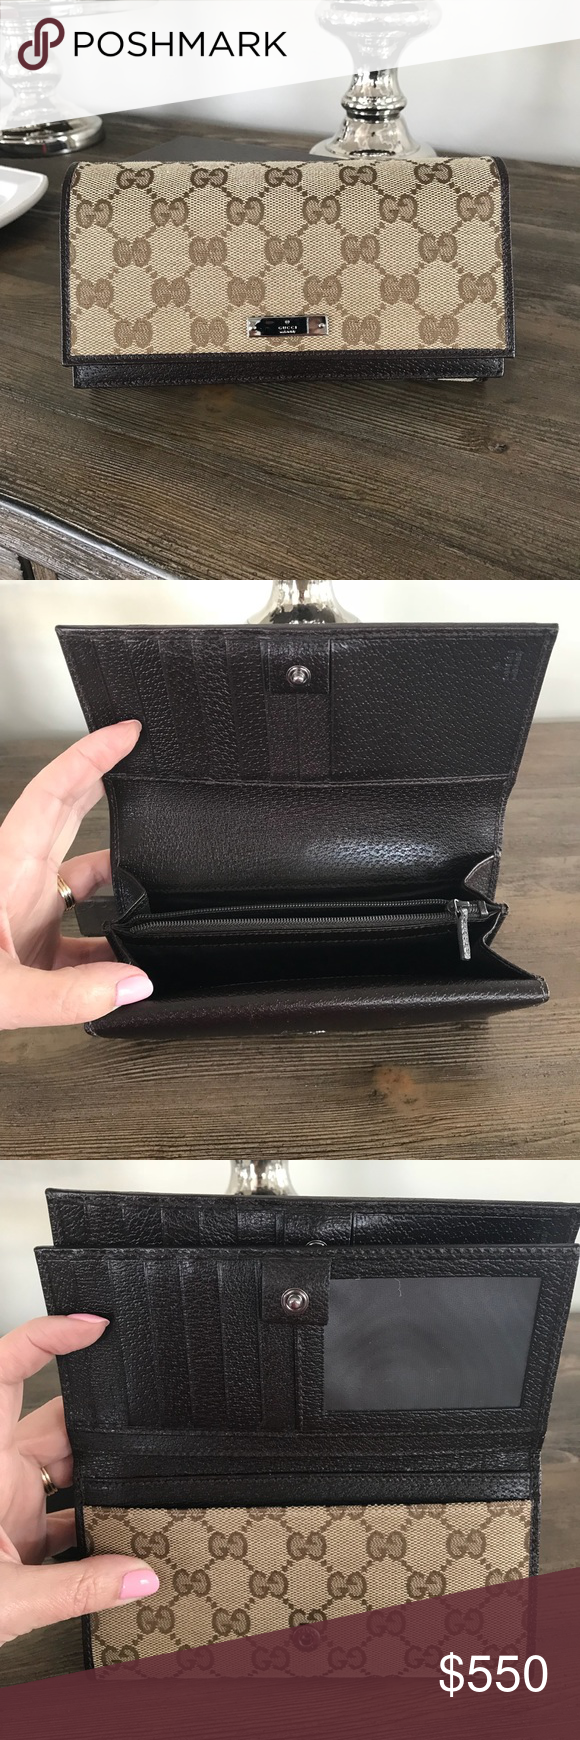 099d80ee2 GUCCI WALLET 🌺 Authentic Gucci Monogram Canvas and Leather Wallet Made in  Italy 15 Card slots Zip Coin Compartment 3 Bill Slots Comes with Box  Excellent ...